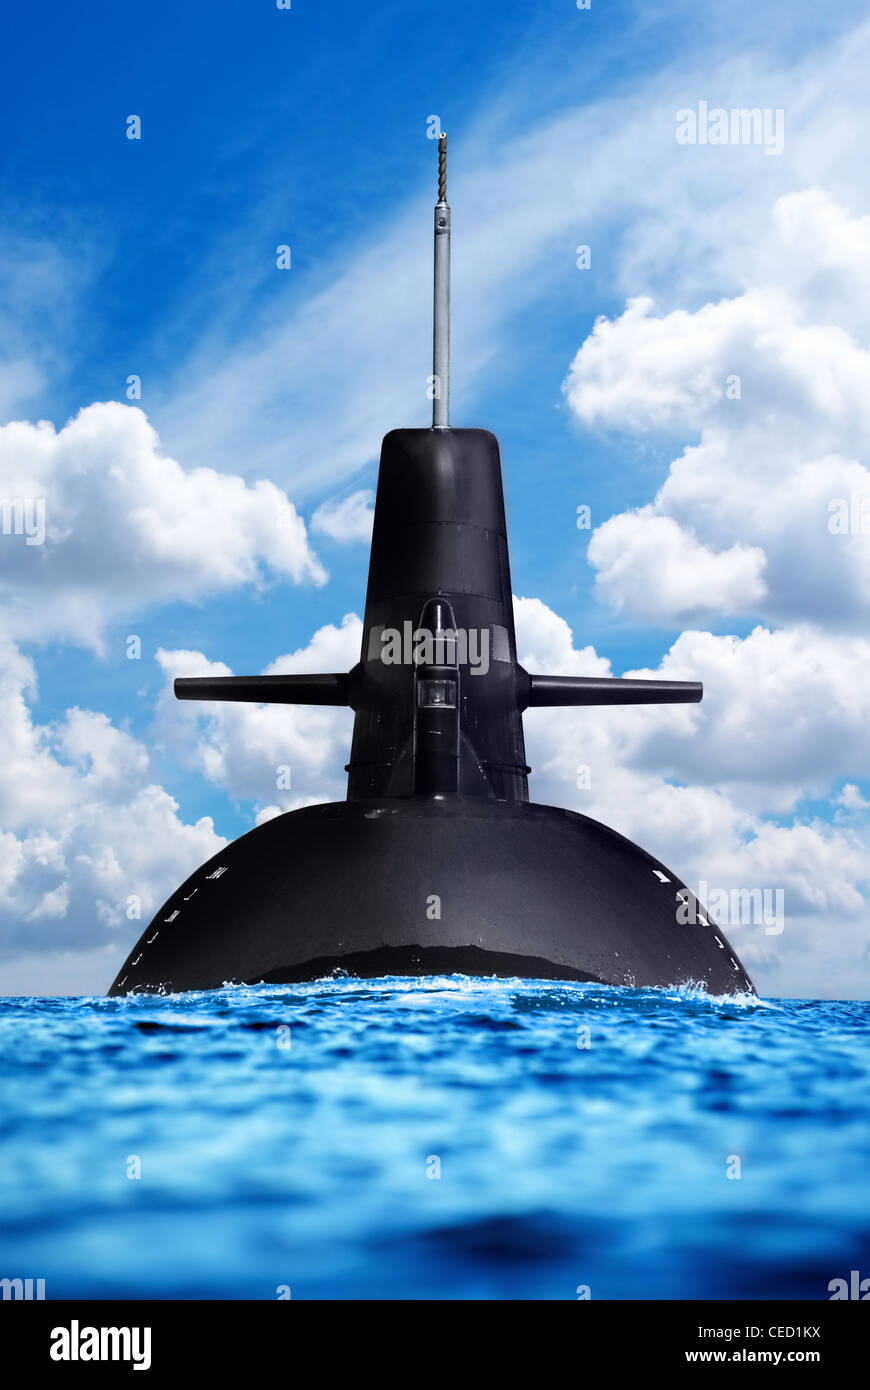 Army Forces and it's weapon on land, sea and air. Nuclear submarine in the ocean. - Stock Image